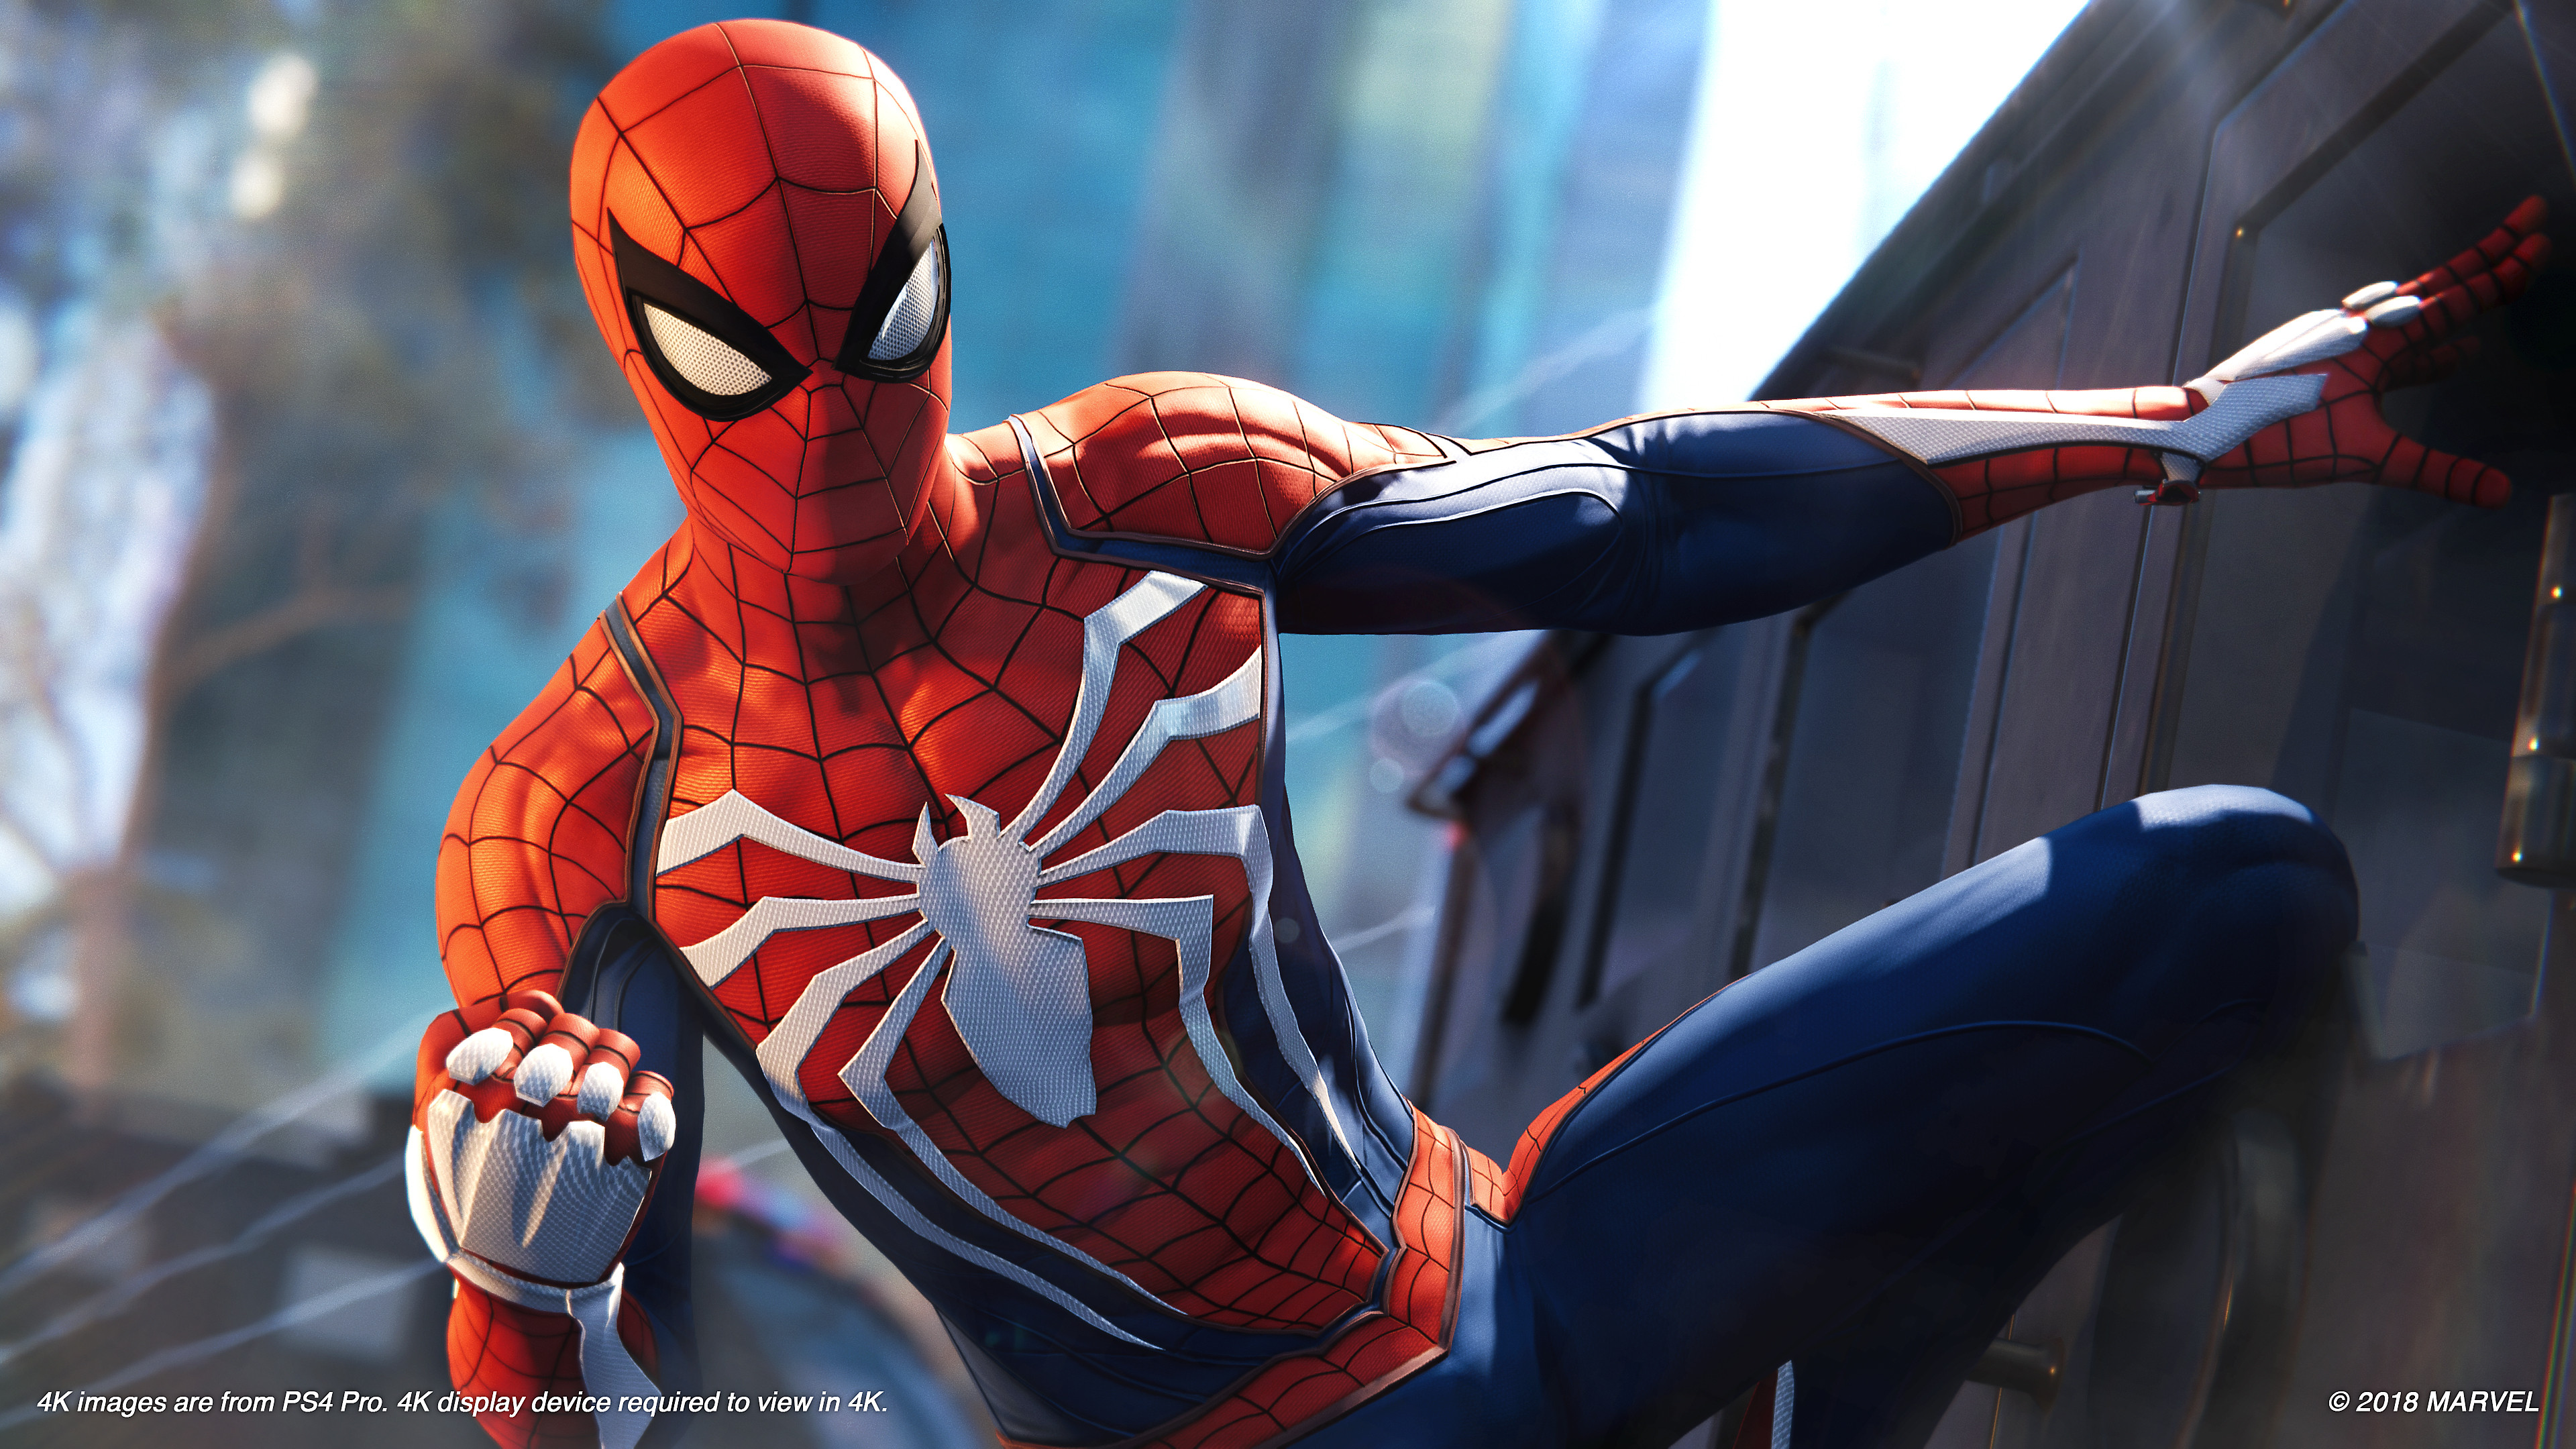 Marvel's Spider-Man Screenshot - Spider-Man hanging from the side of a building, ready for action